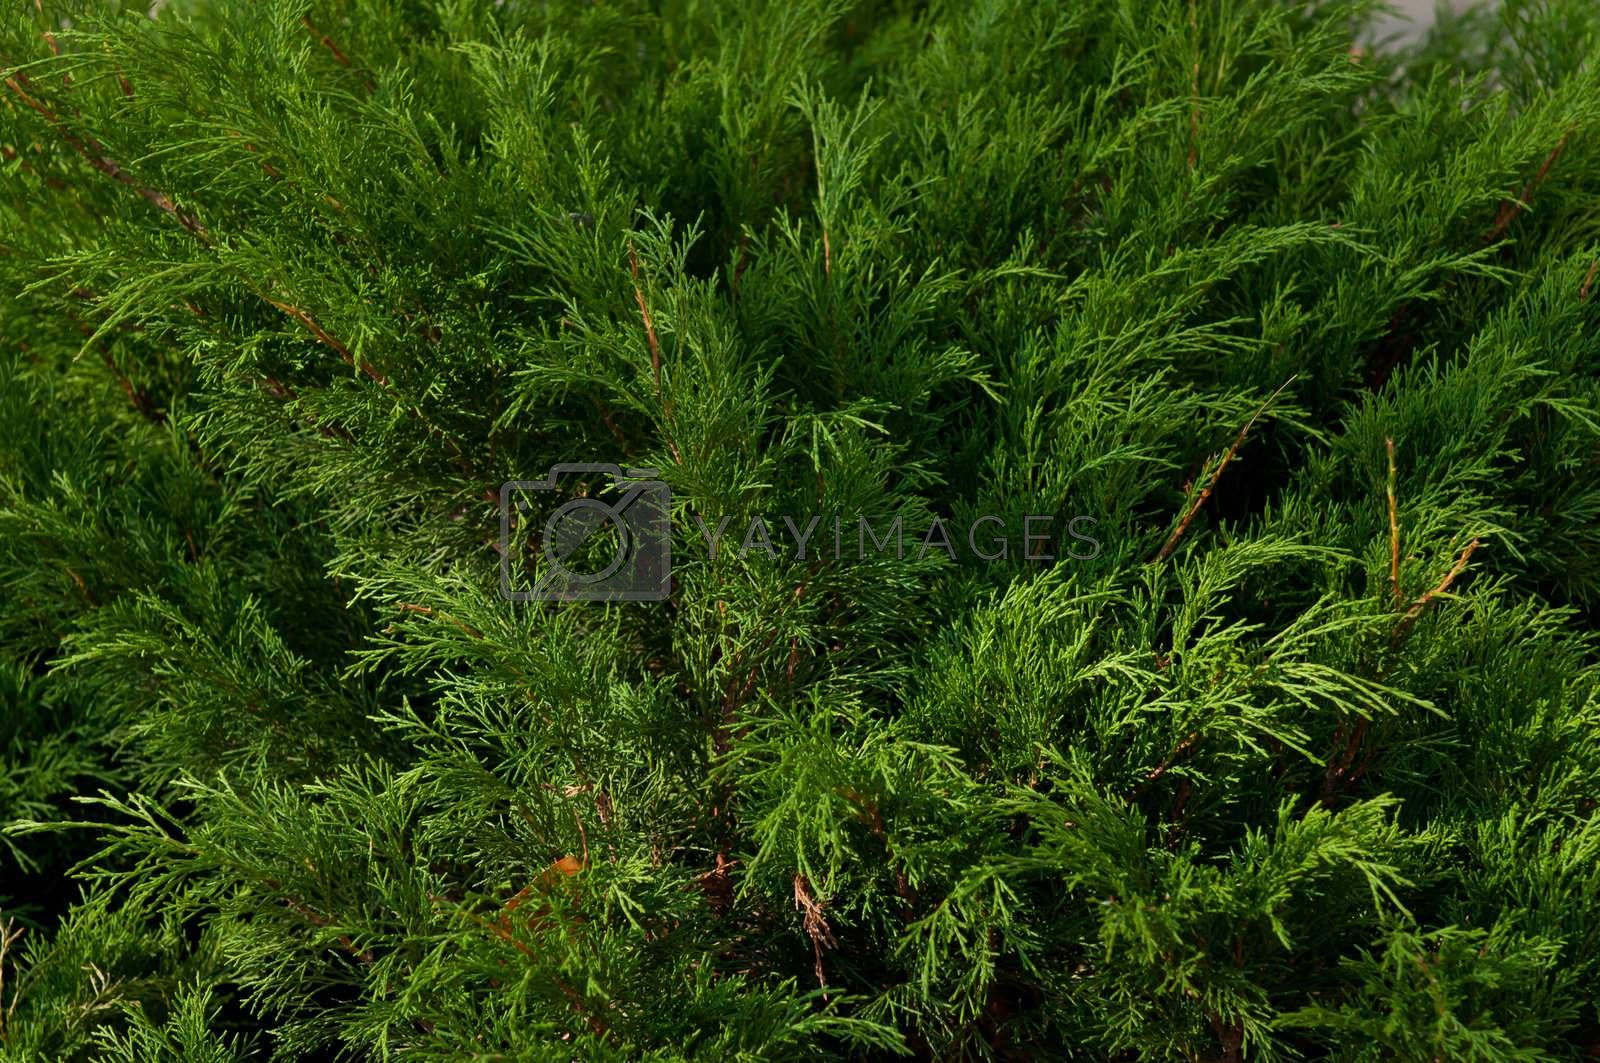 Thuja background. Green arborvitae branch. Branch of thuja tree.